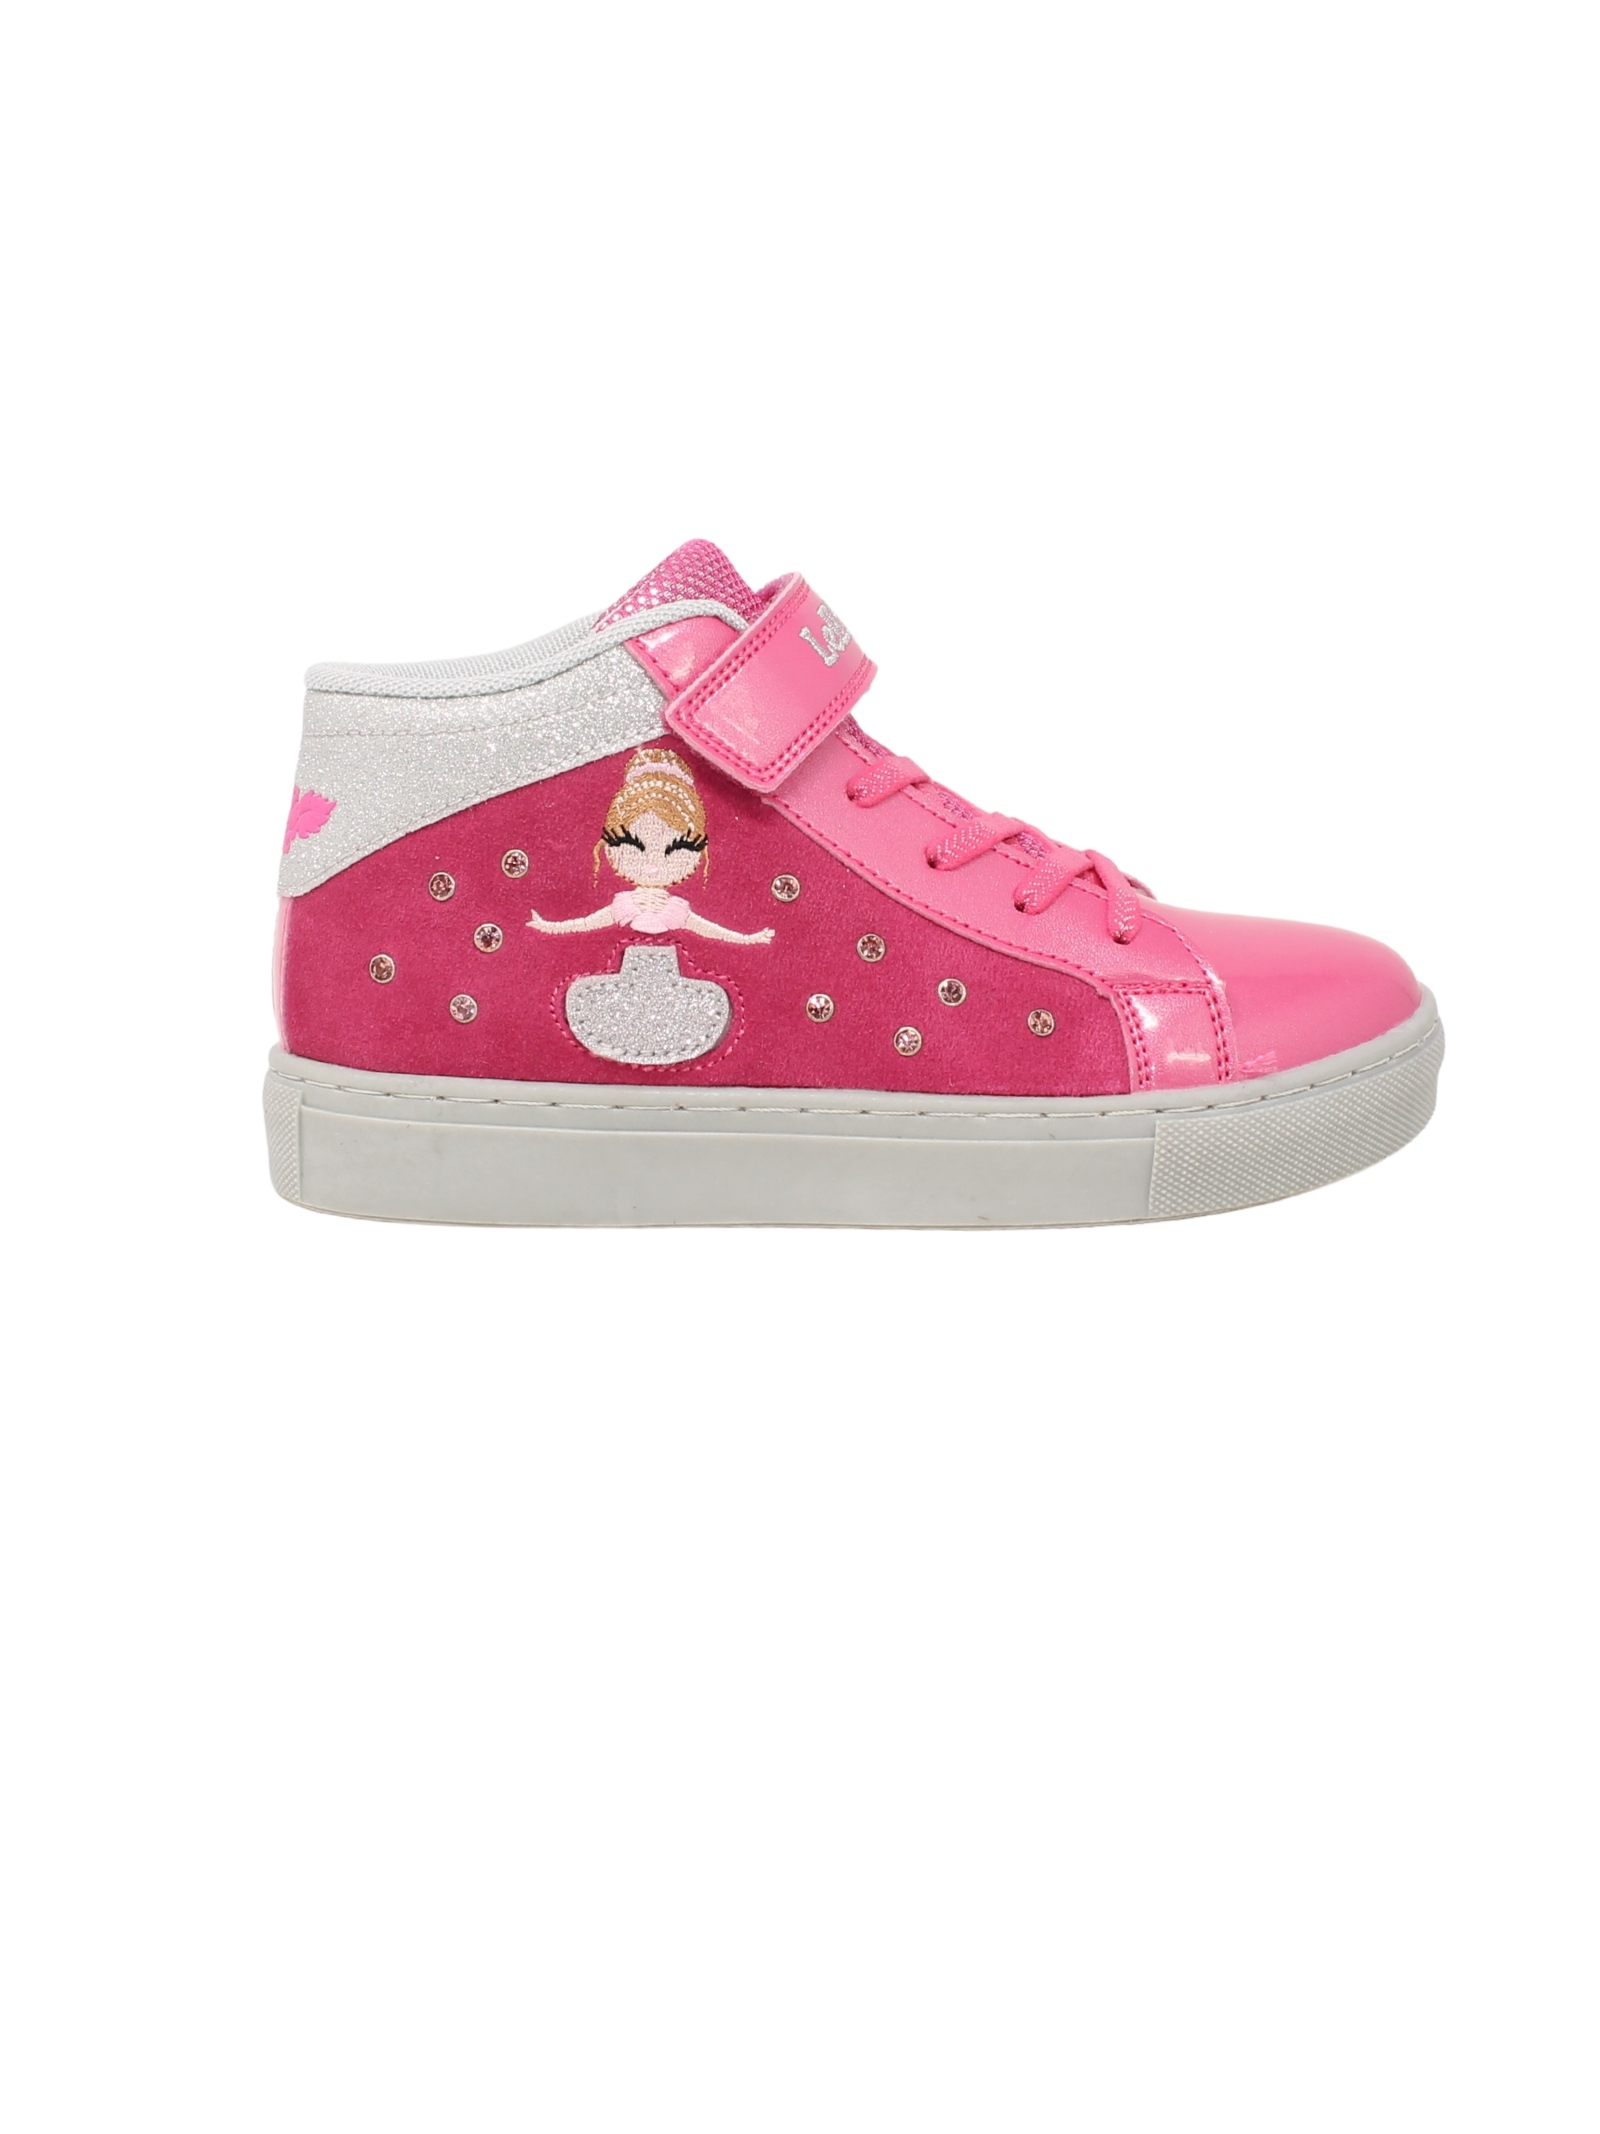 Sneakers Mille Stelle Fuxia Bambina LELLI KELLY | Sneakers | LK4836FUXIA